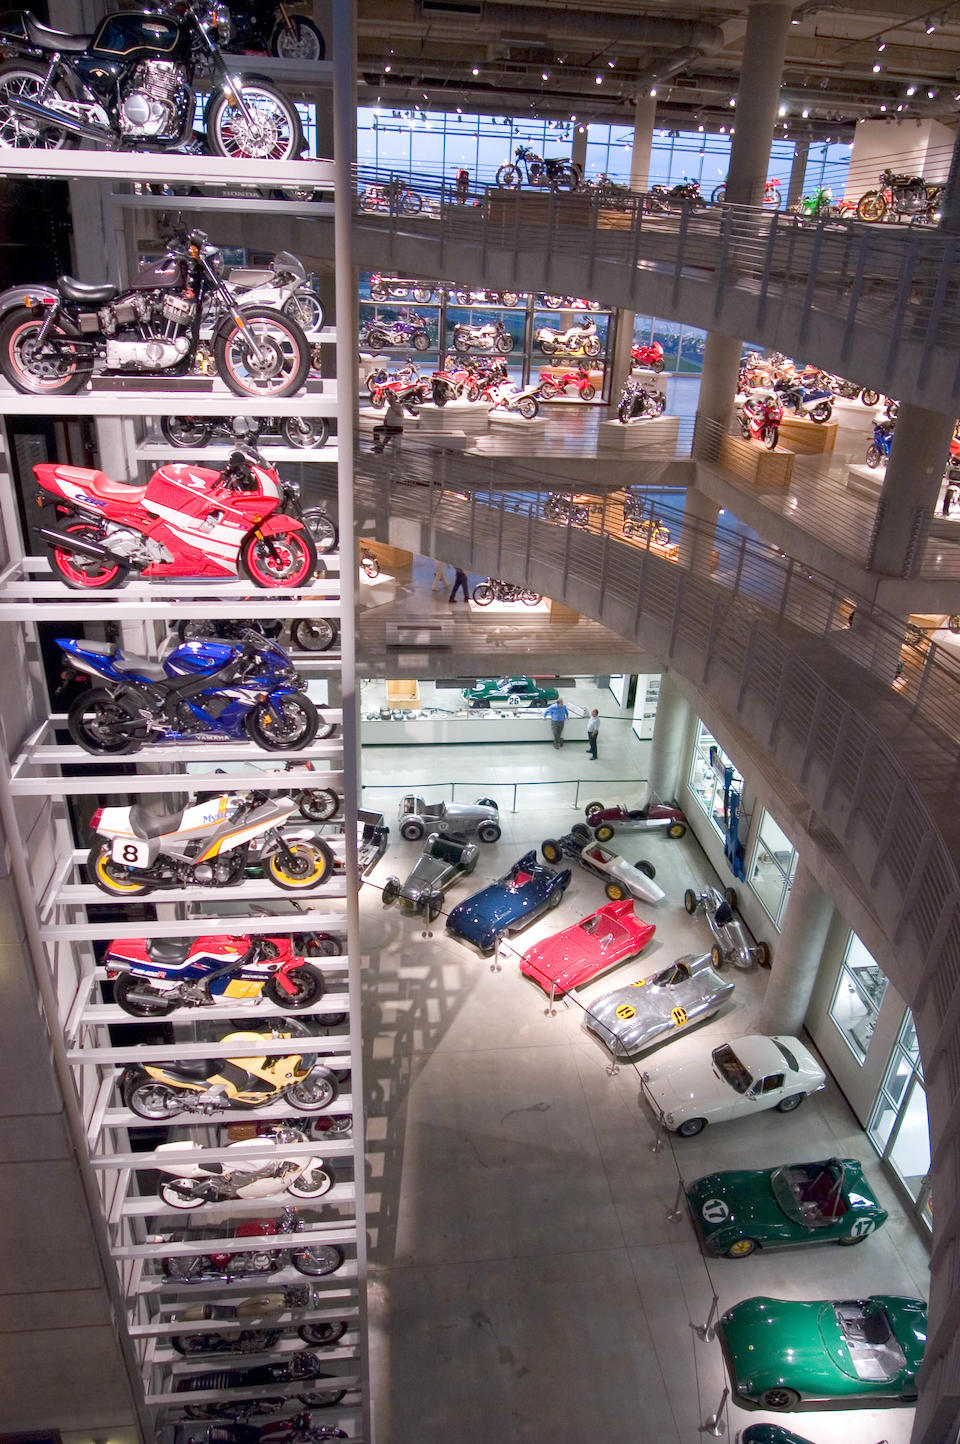 Two Weekend Event Tickets to the Honda Indy Grand Prix of Alabama along with entry to the Barber Vintage Motorsports Museum, April 2021